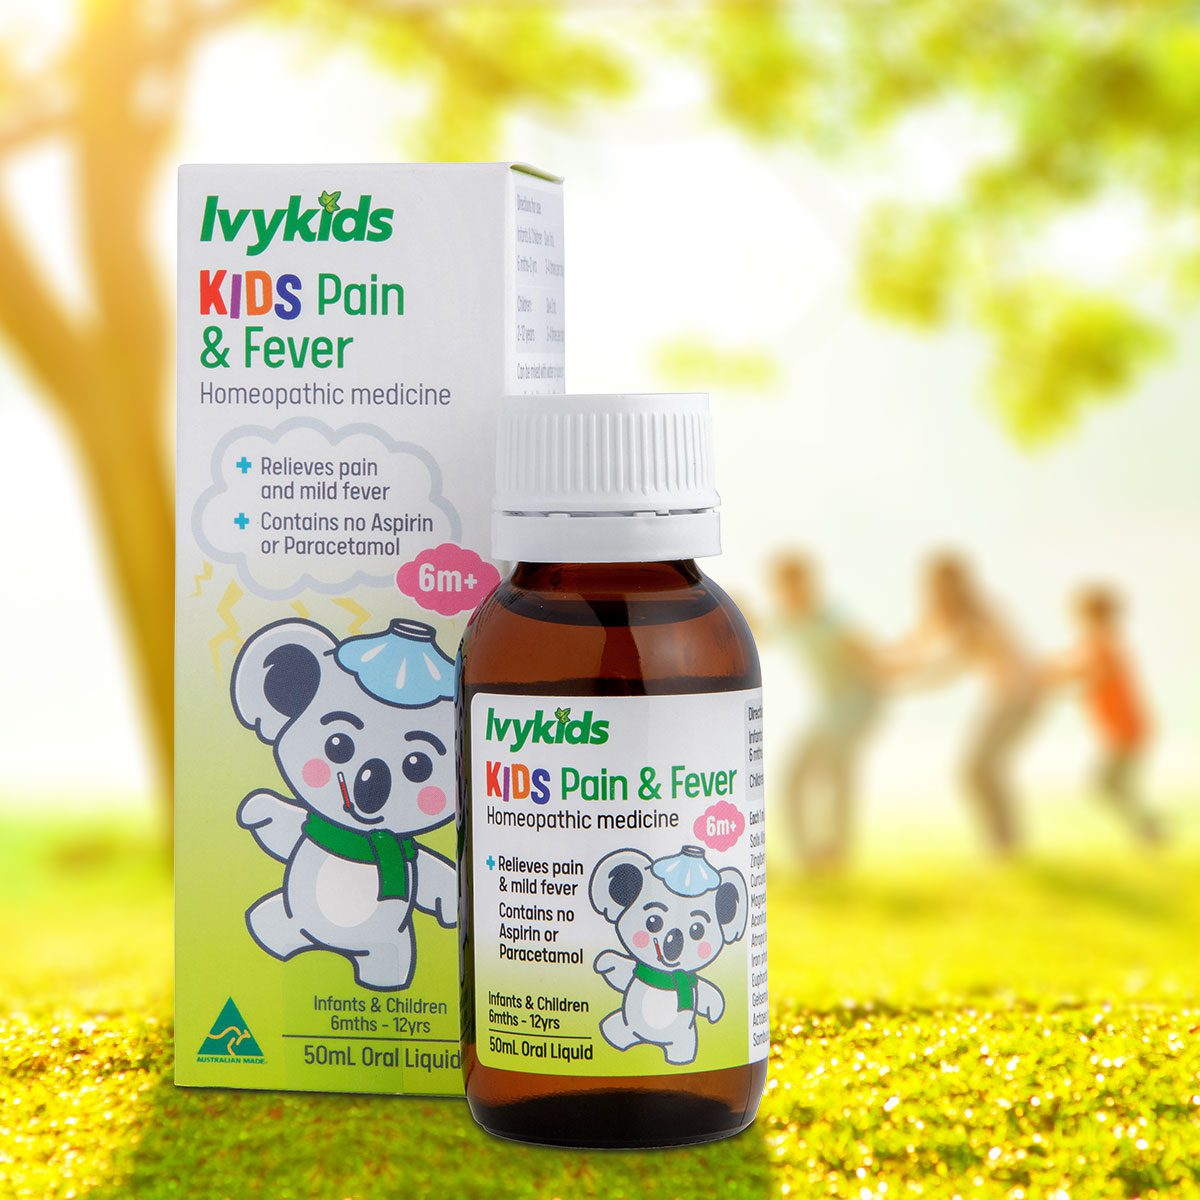 IvyKids Packaging design by 3cre8ive